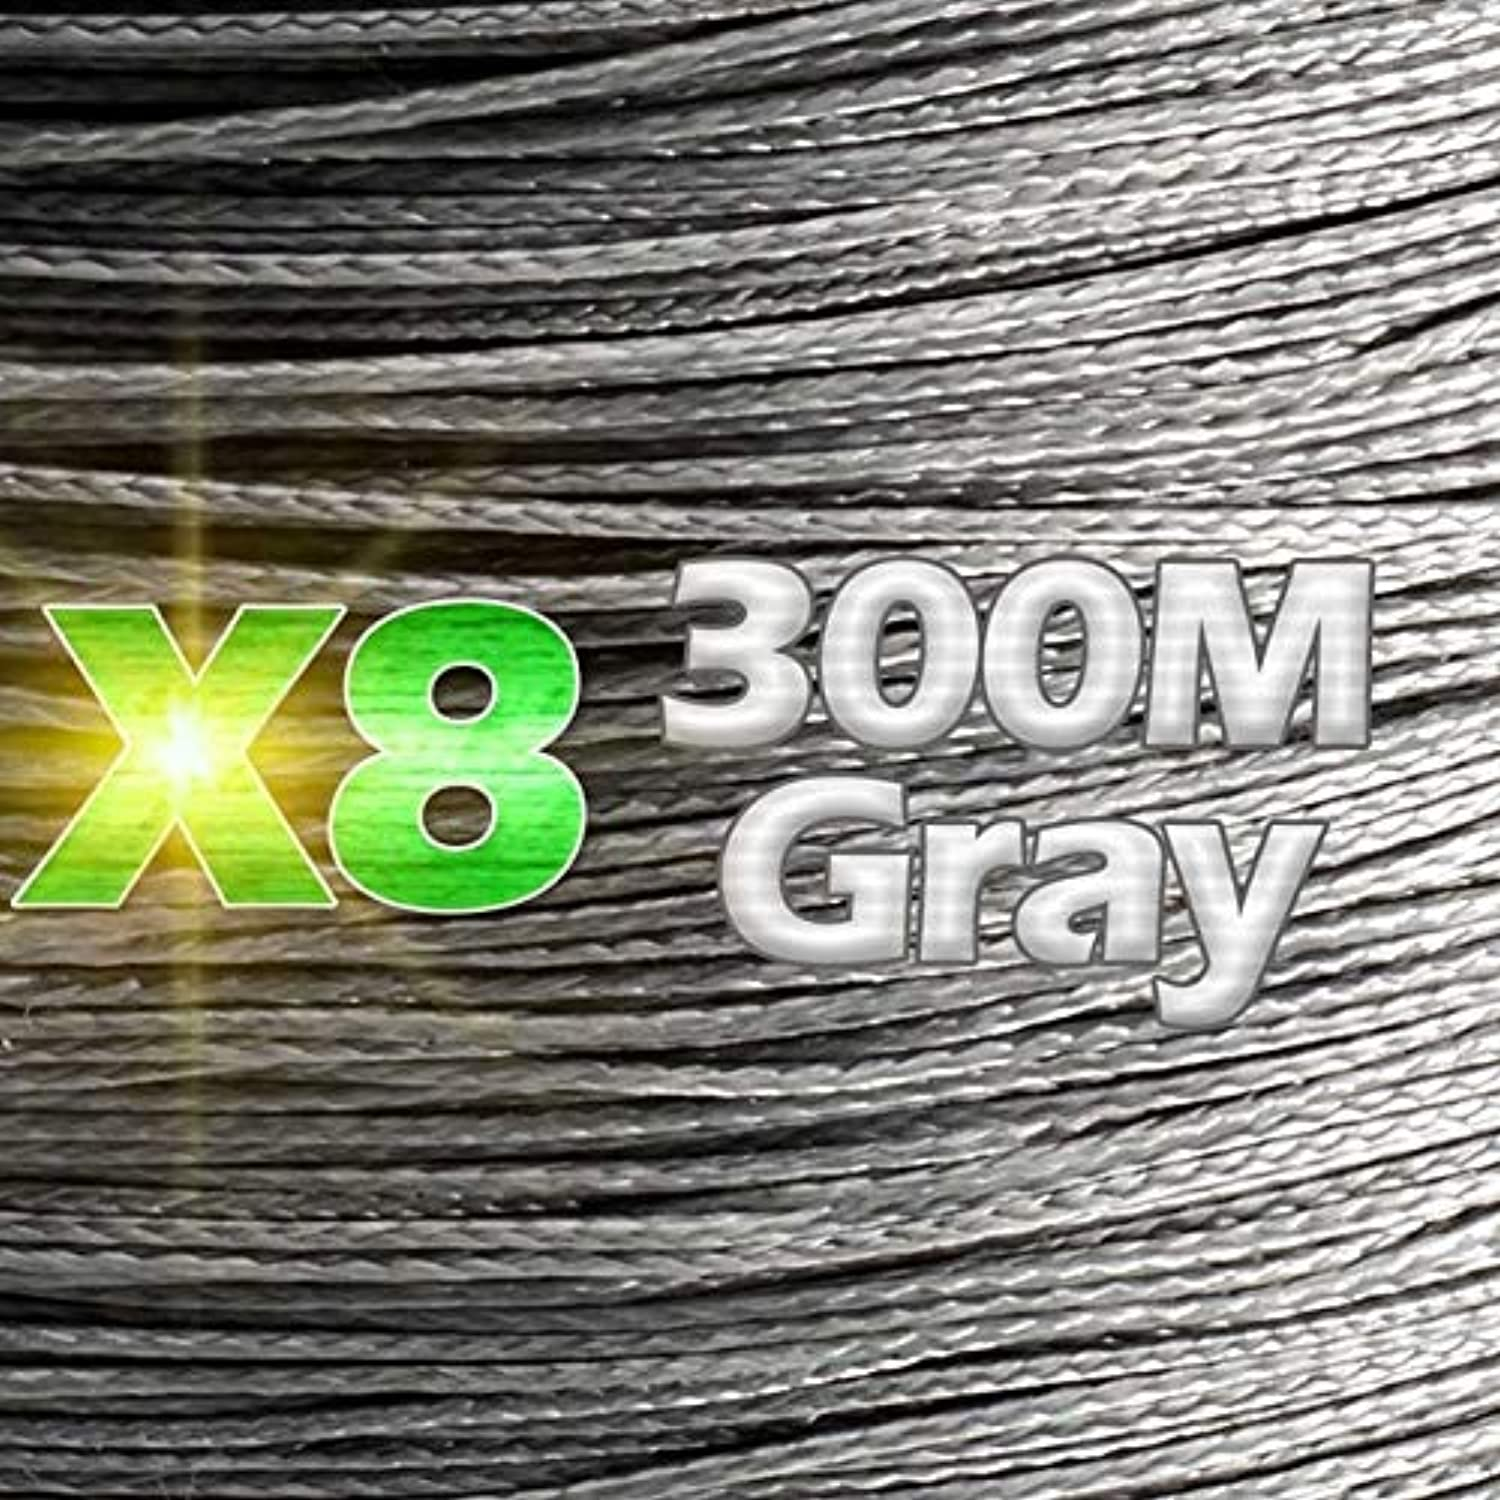 JOSBY 300M 500M 1000M 4 Strands 8 Strands Multico PE Braided Wire Multifilament Fishing Line Carp Fishing 10-80 LB 2018 New   X8-300M-, 1.0